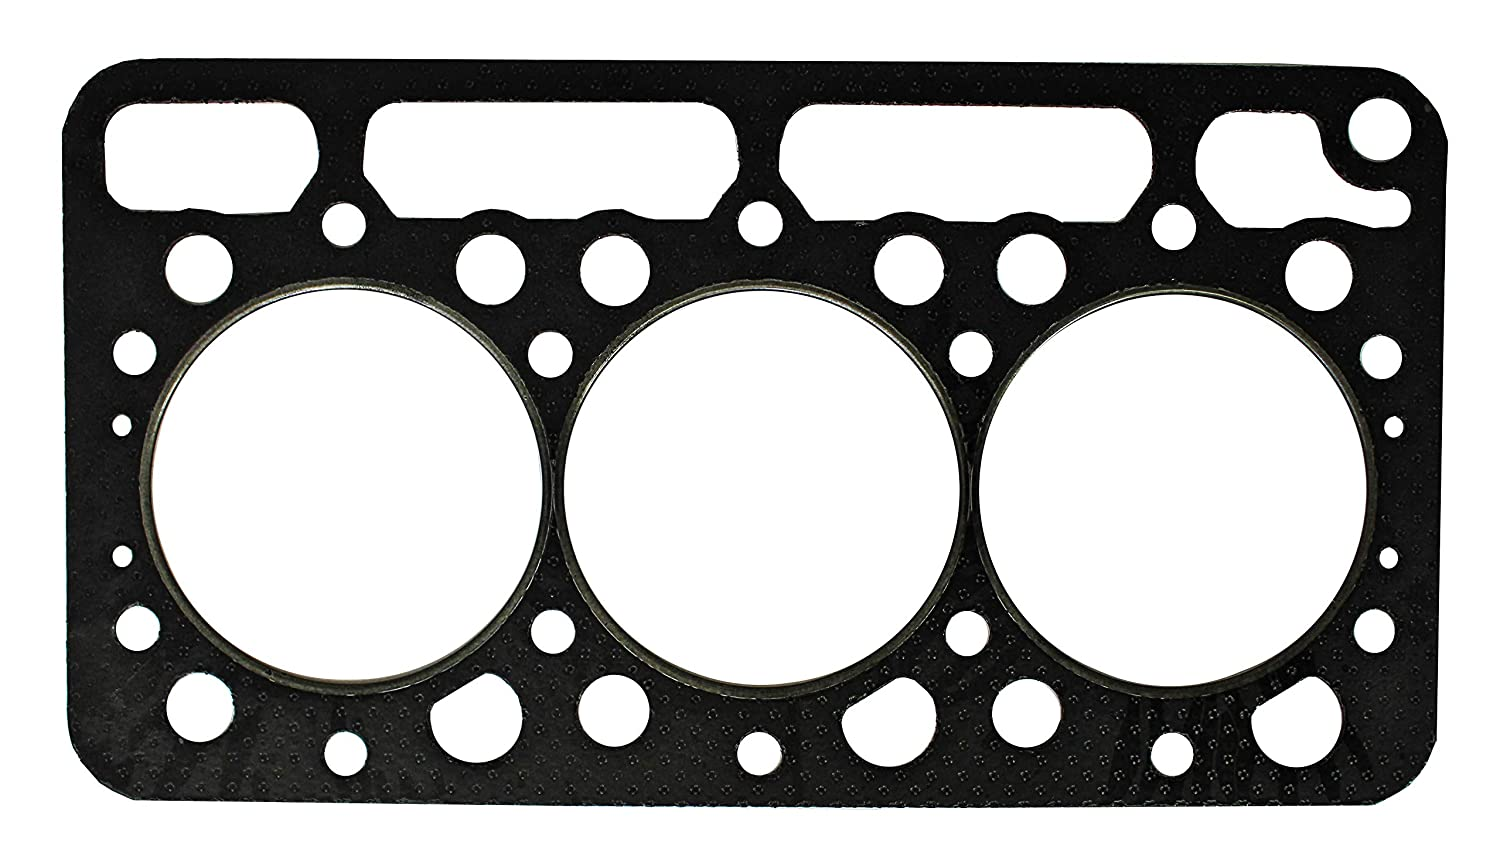 3D75 Made In Taiwan DL-SM-G589 Dream Leap 15751-0331-1 Graphite Head Gasket for Kubota D950